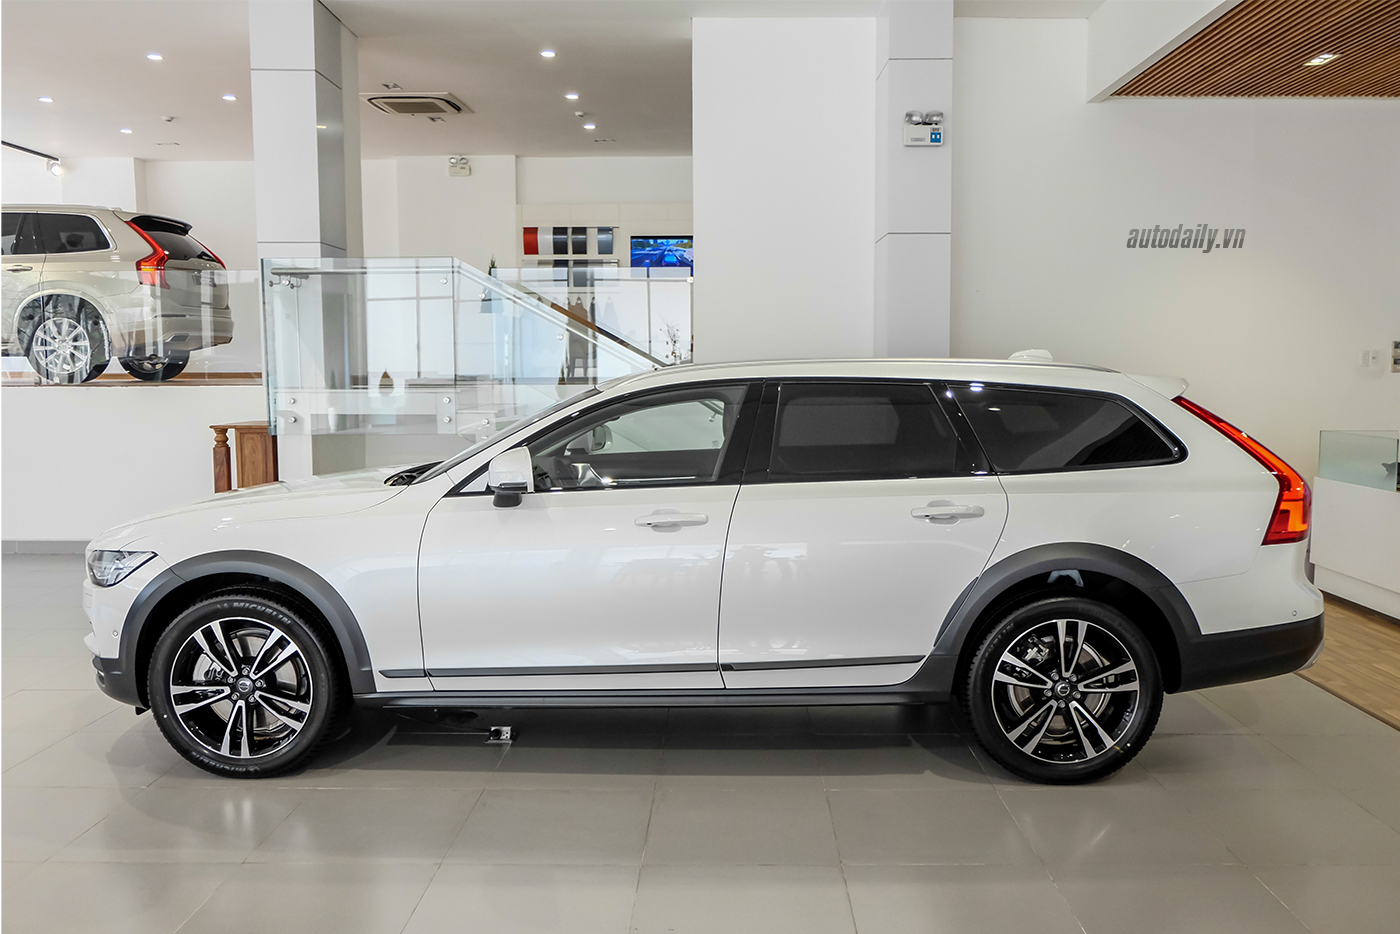 volvo-v90-cross-country-2018-5.jpg